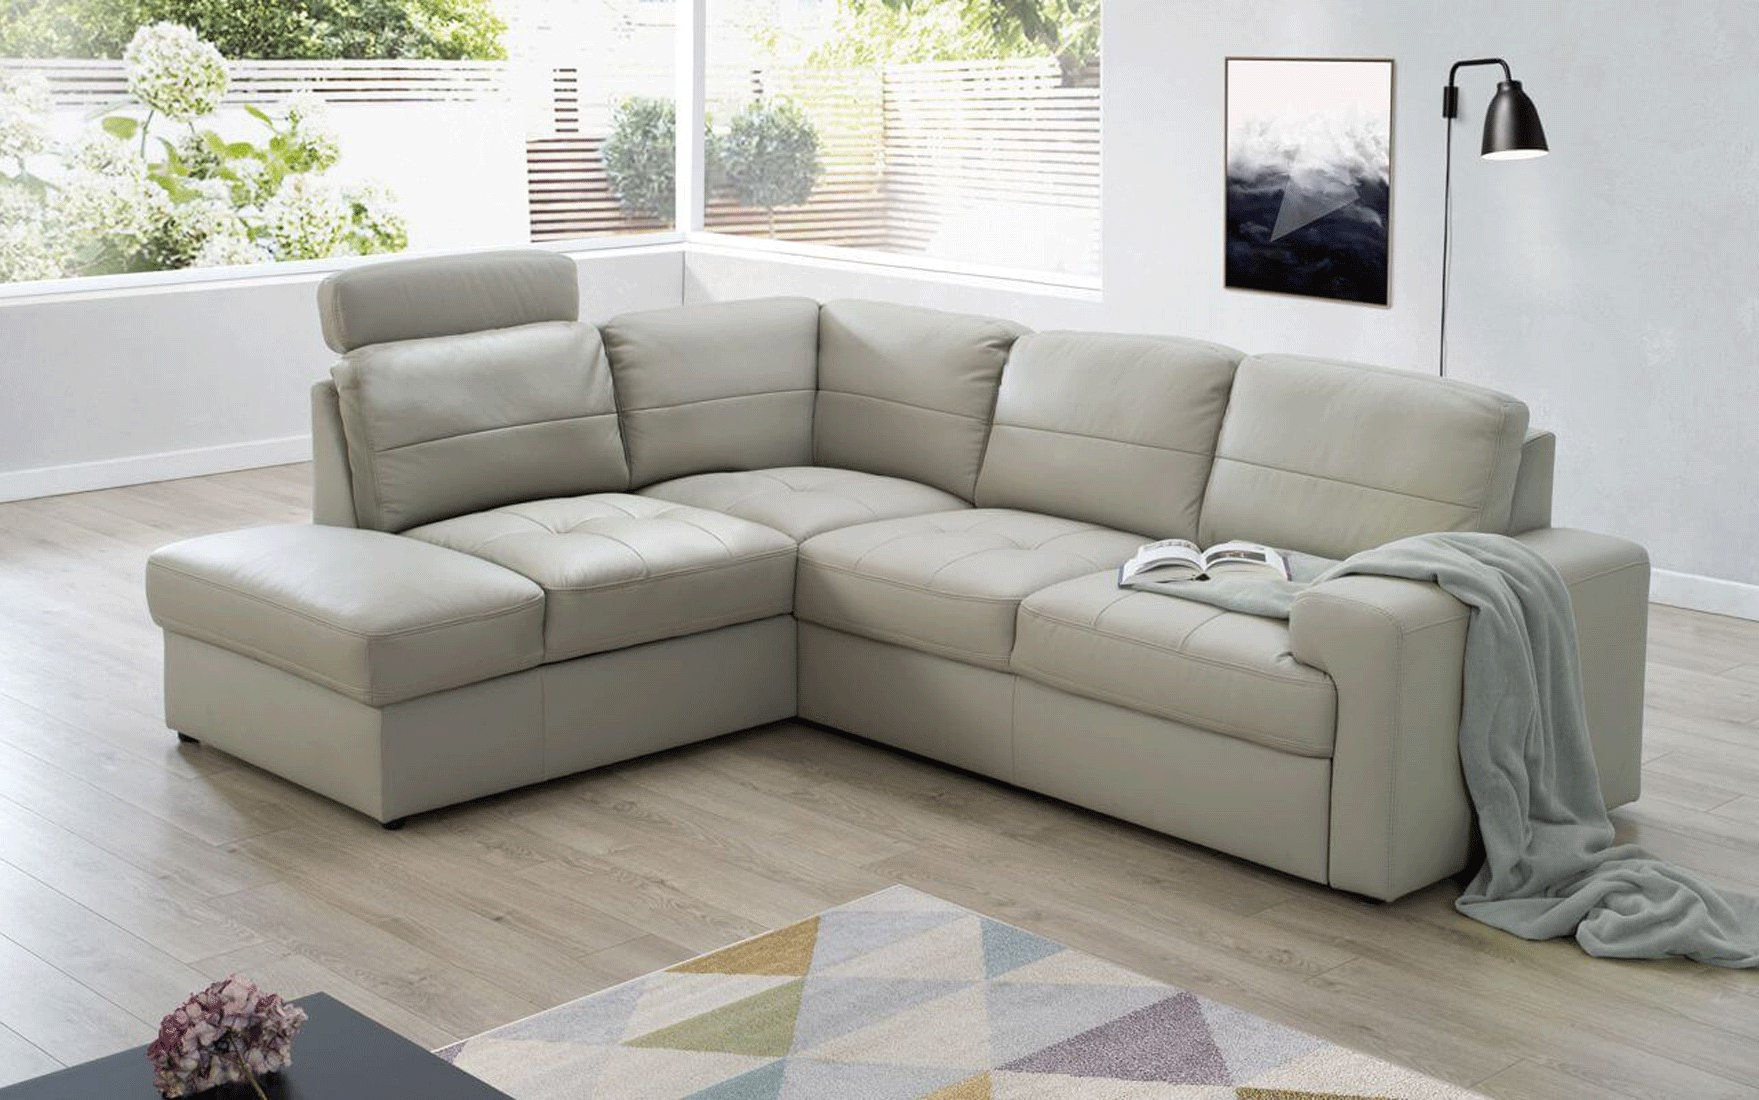 Hannah Right Sectional Sofas With Regard To Popular Ella Sectional Right W/bed & Storage, Sectionals With (View 11 of 20)